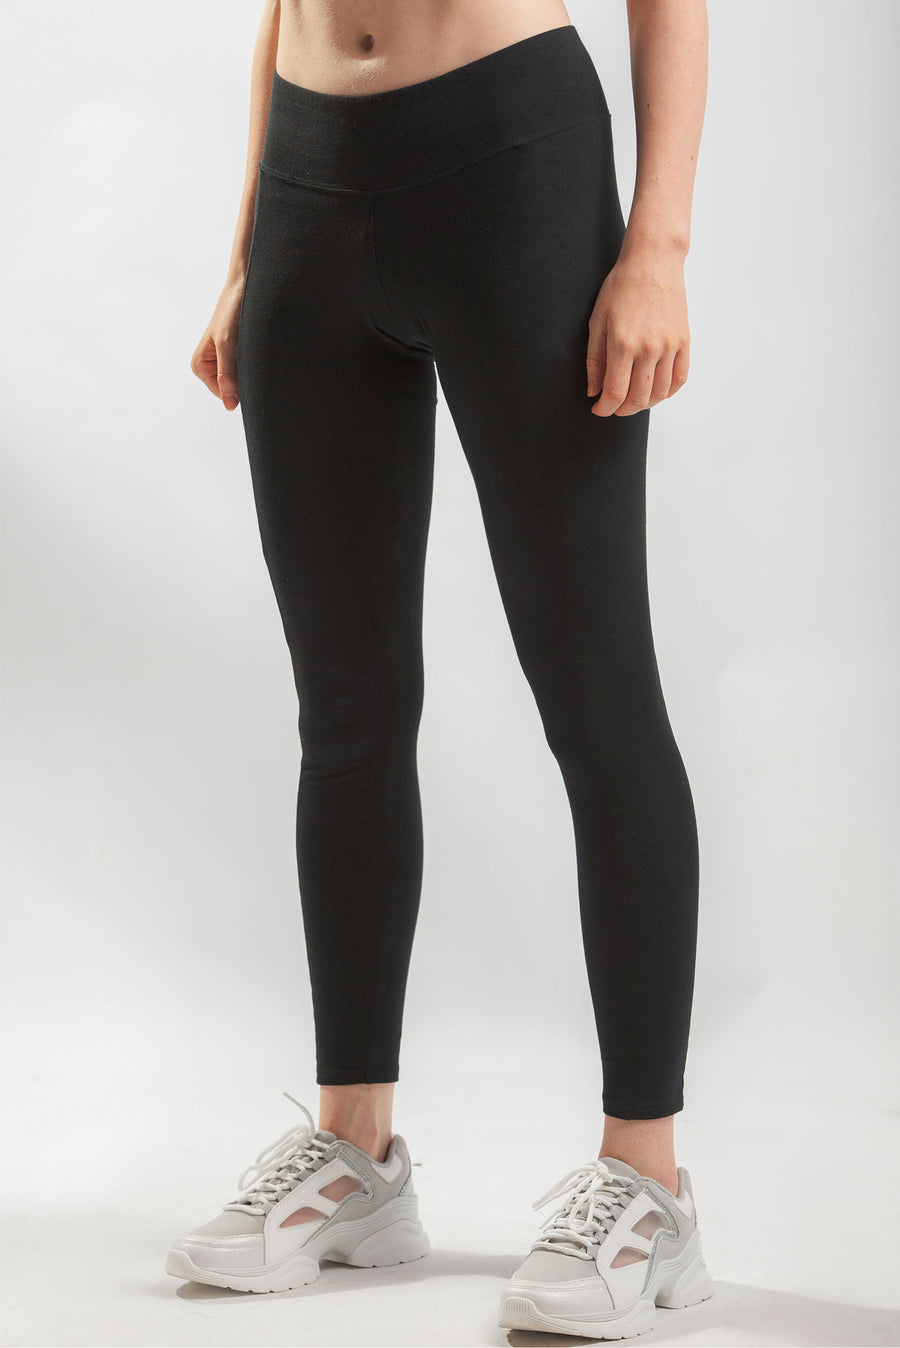 Womens Cotton Spandex Pocket Leggings